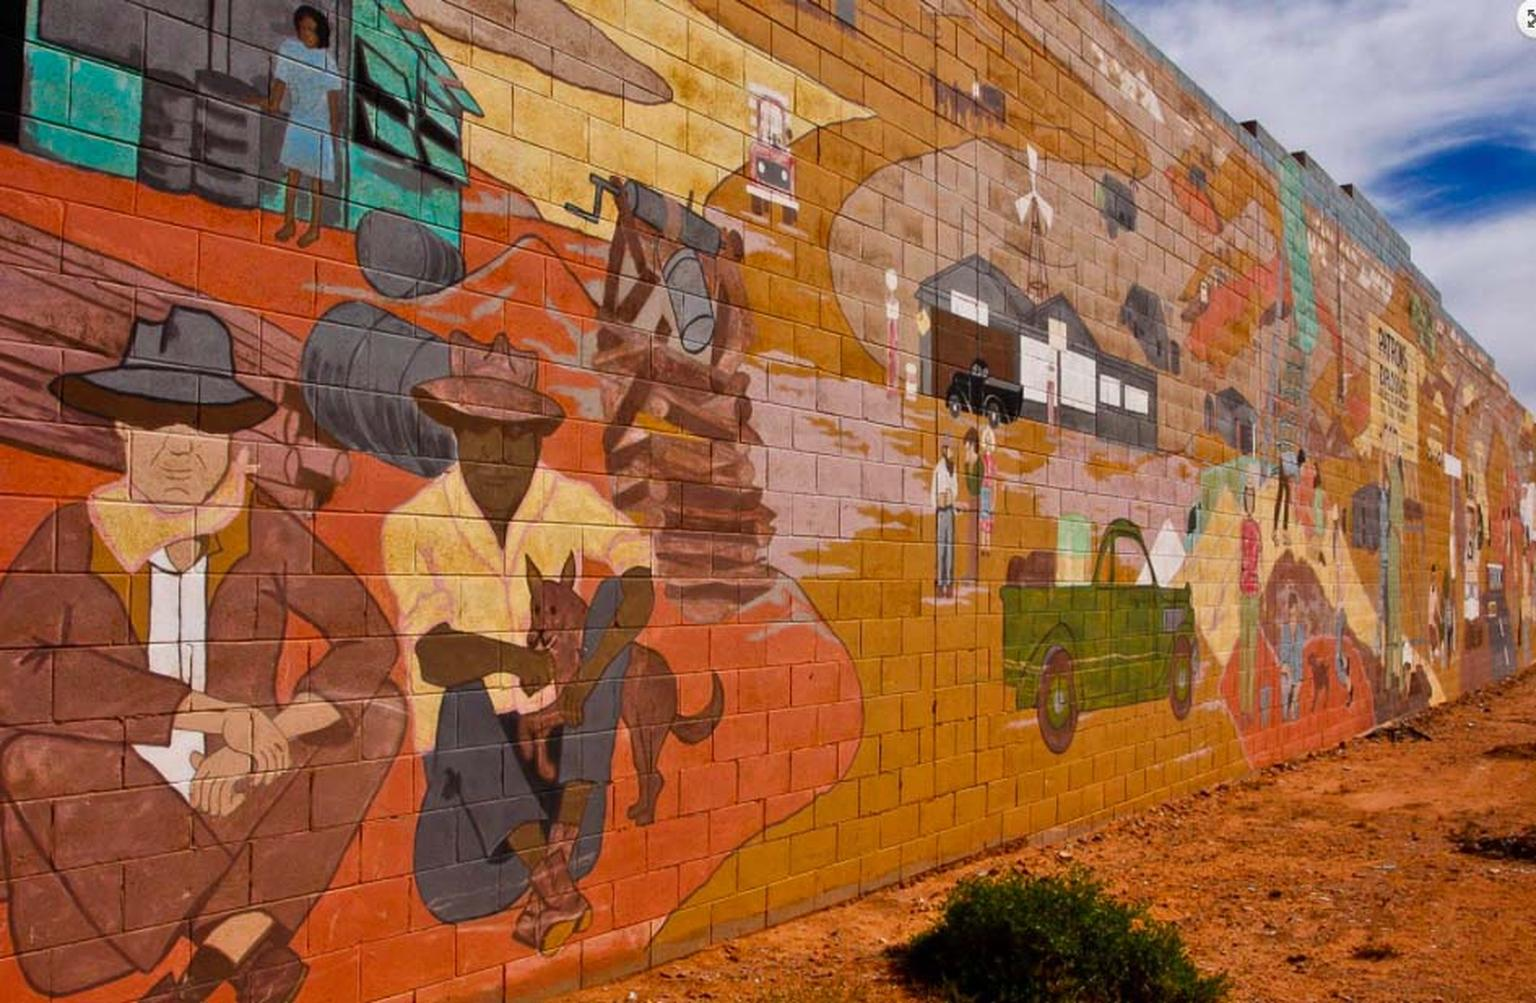 Lucas mural at the local supermarket of Coober Pedy, Australia. Photo: Courtesy of South Cape Photography / District Council of Coober Pedy.